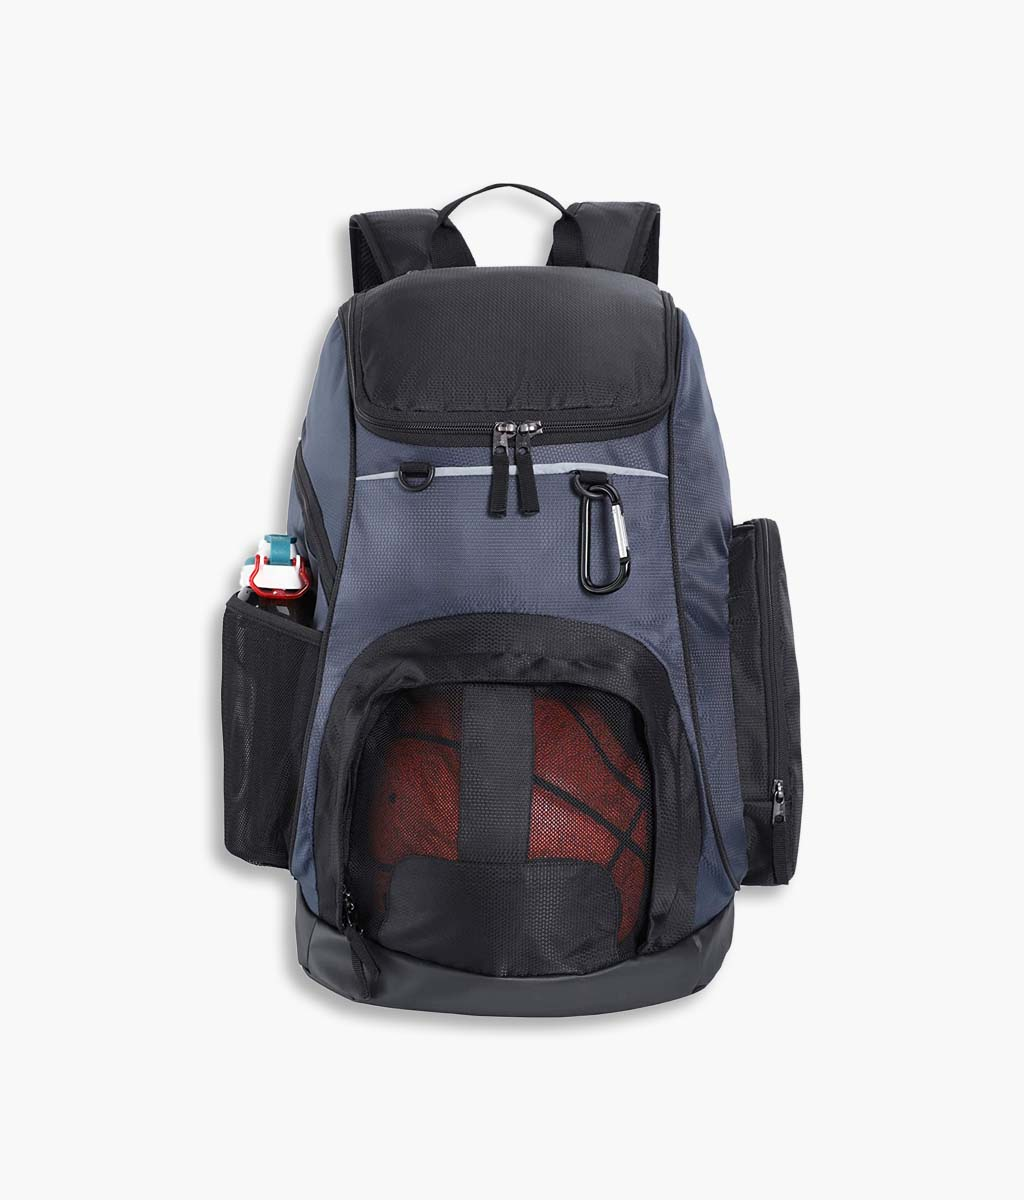 Sports Backpack with Basketball Compartment